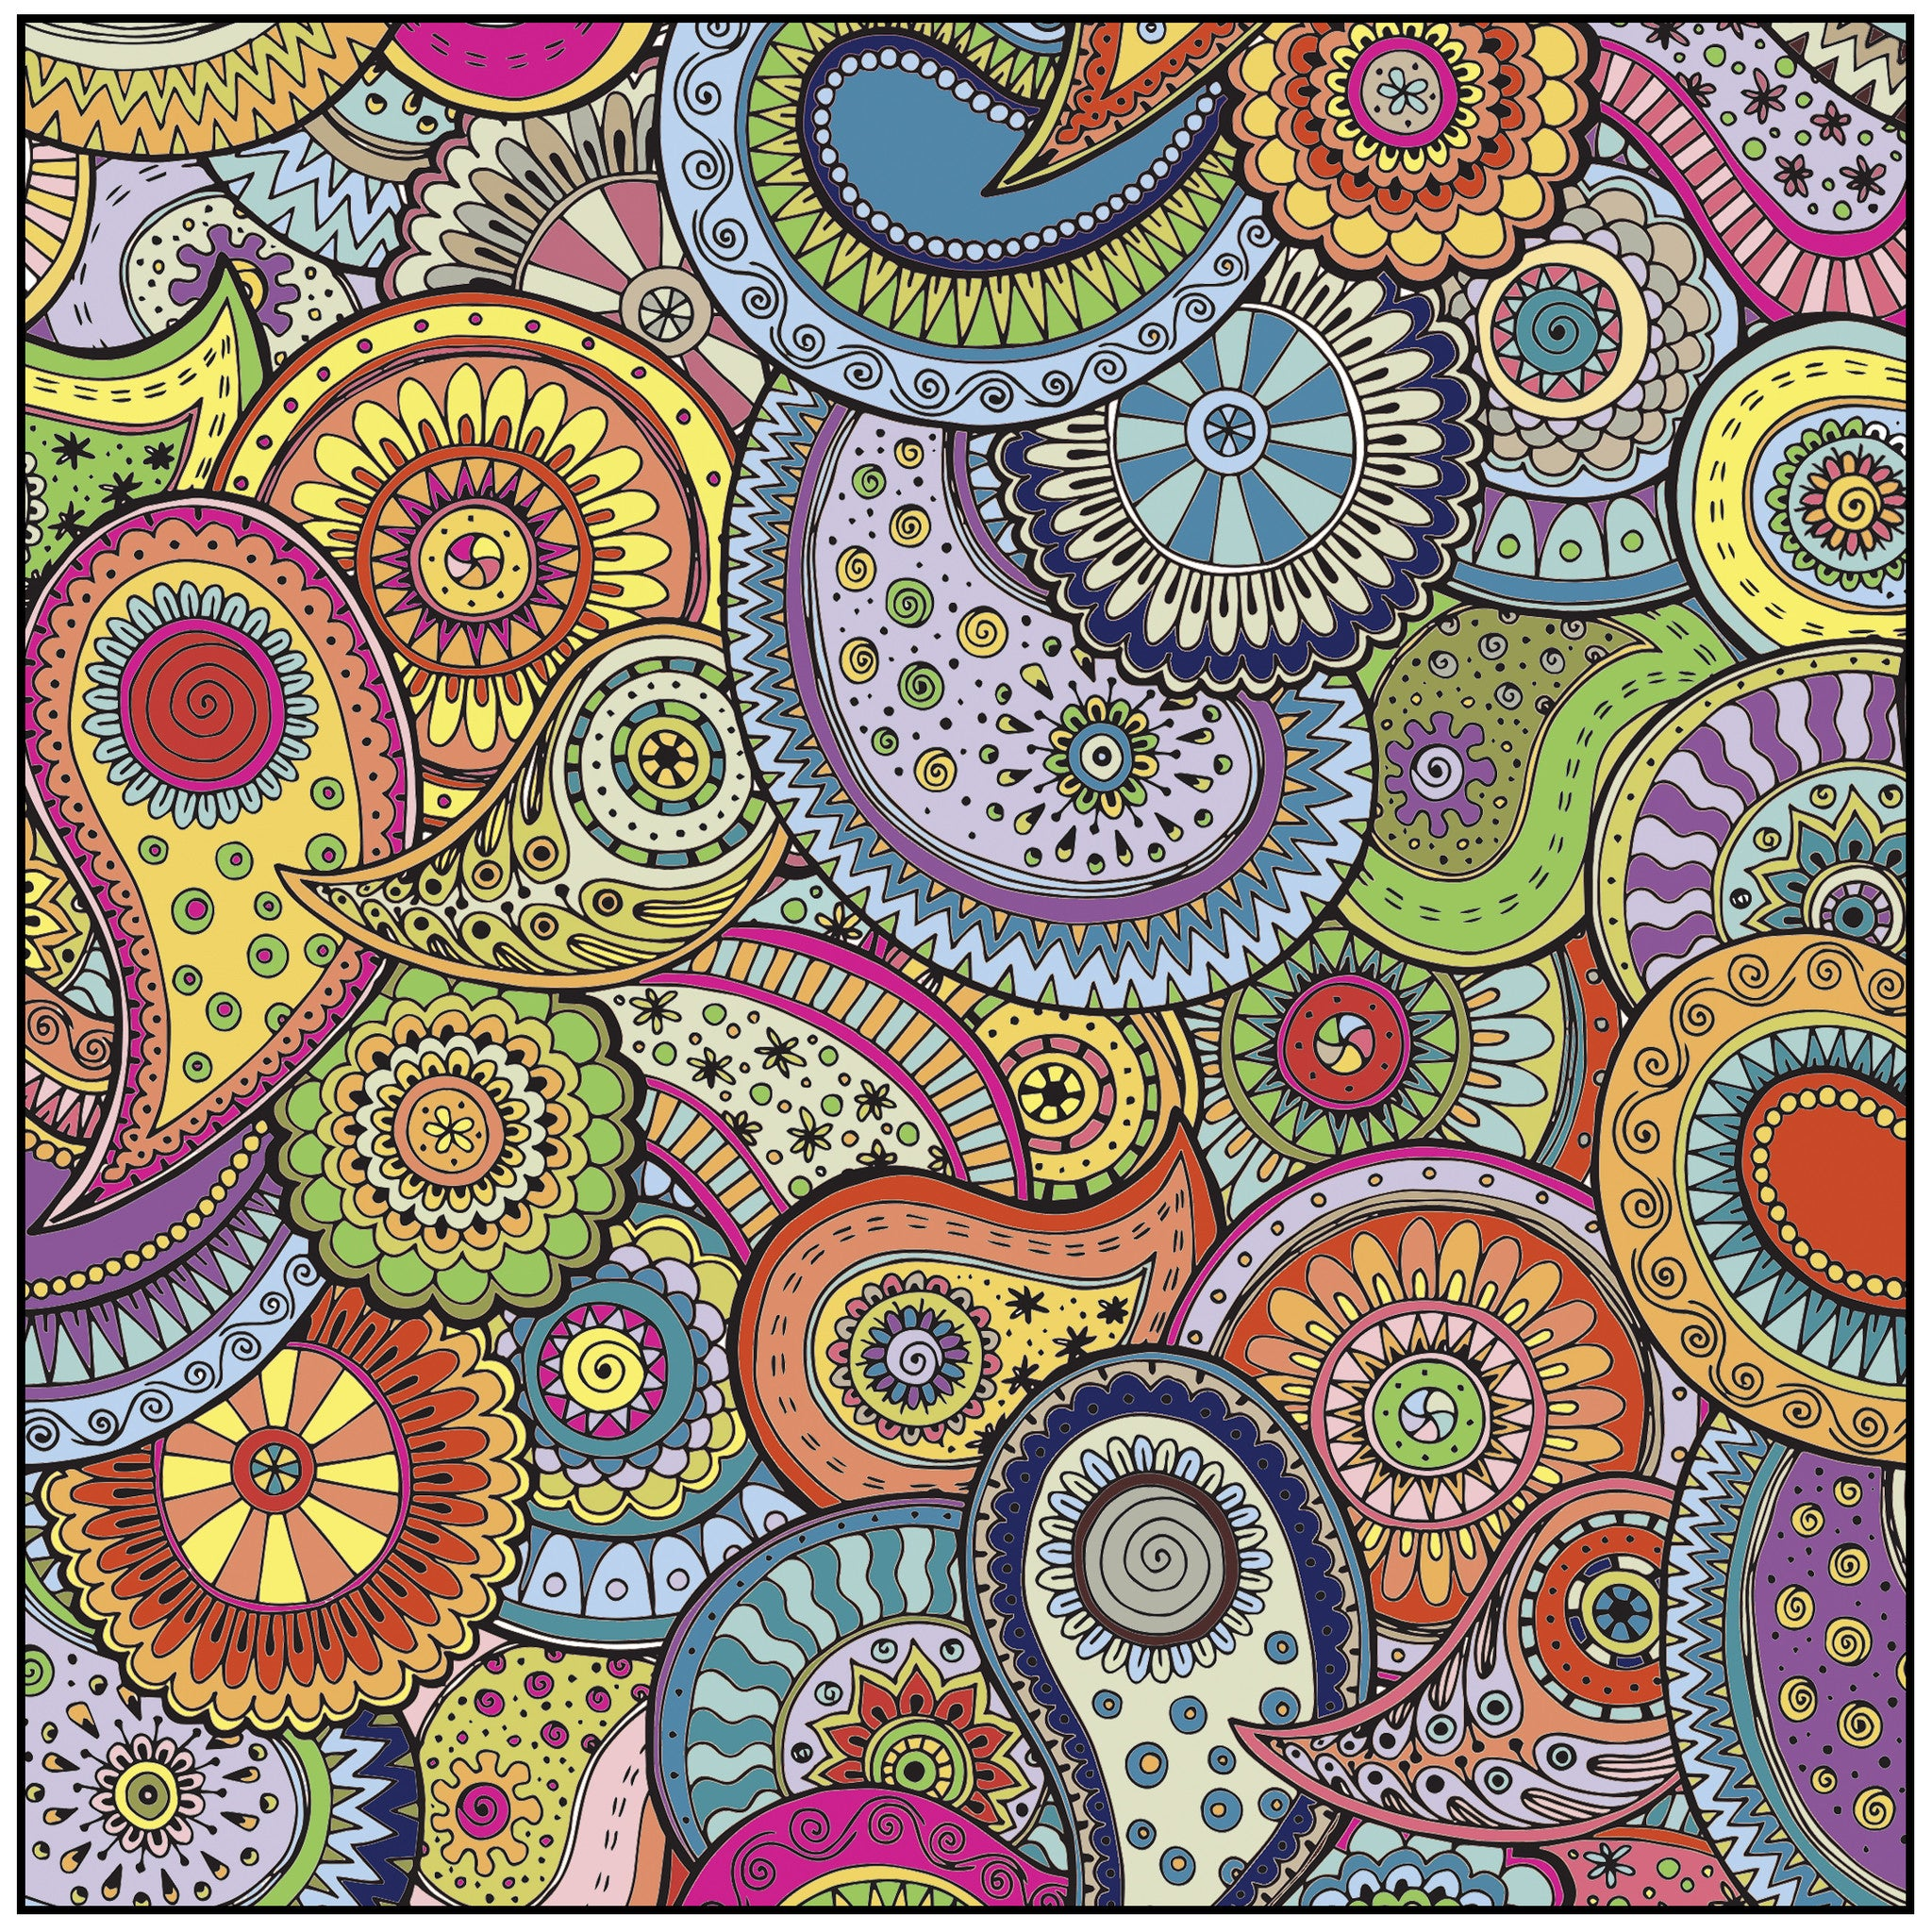 Coloring book color of art - Color With Music Patterns Shapes And Designs Adult Coloring Book Colored Page